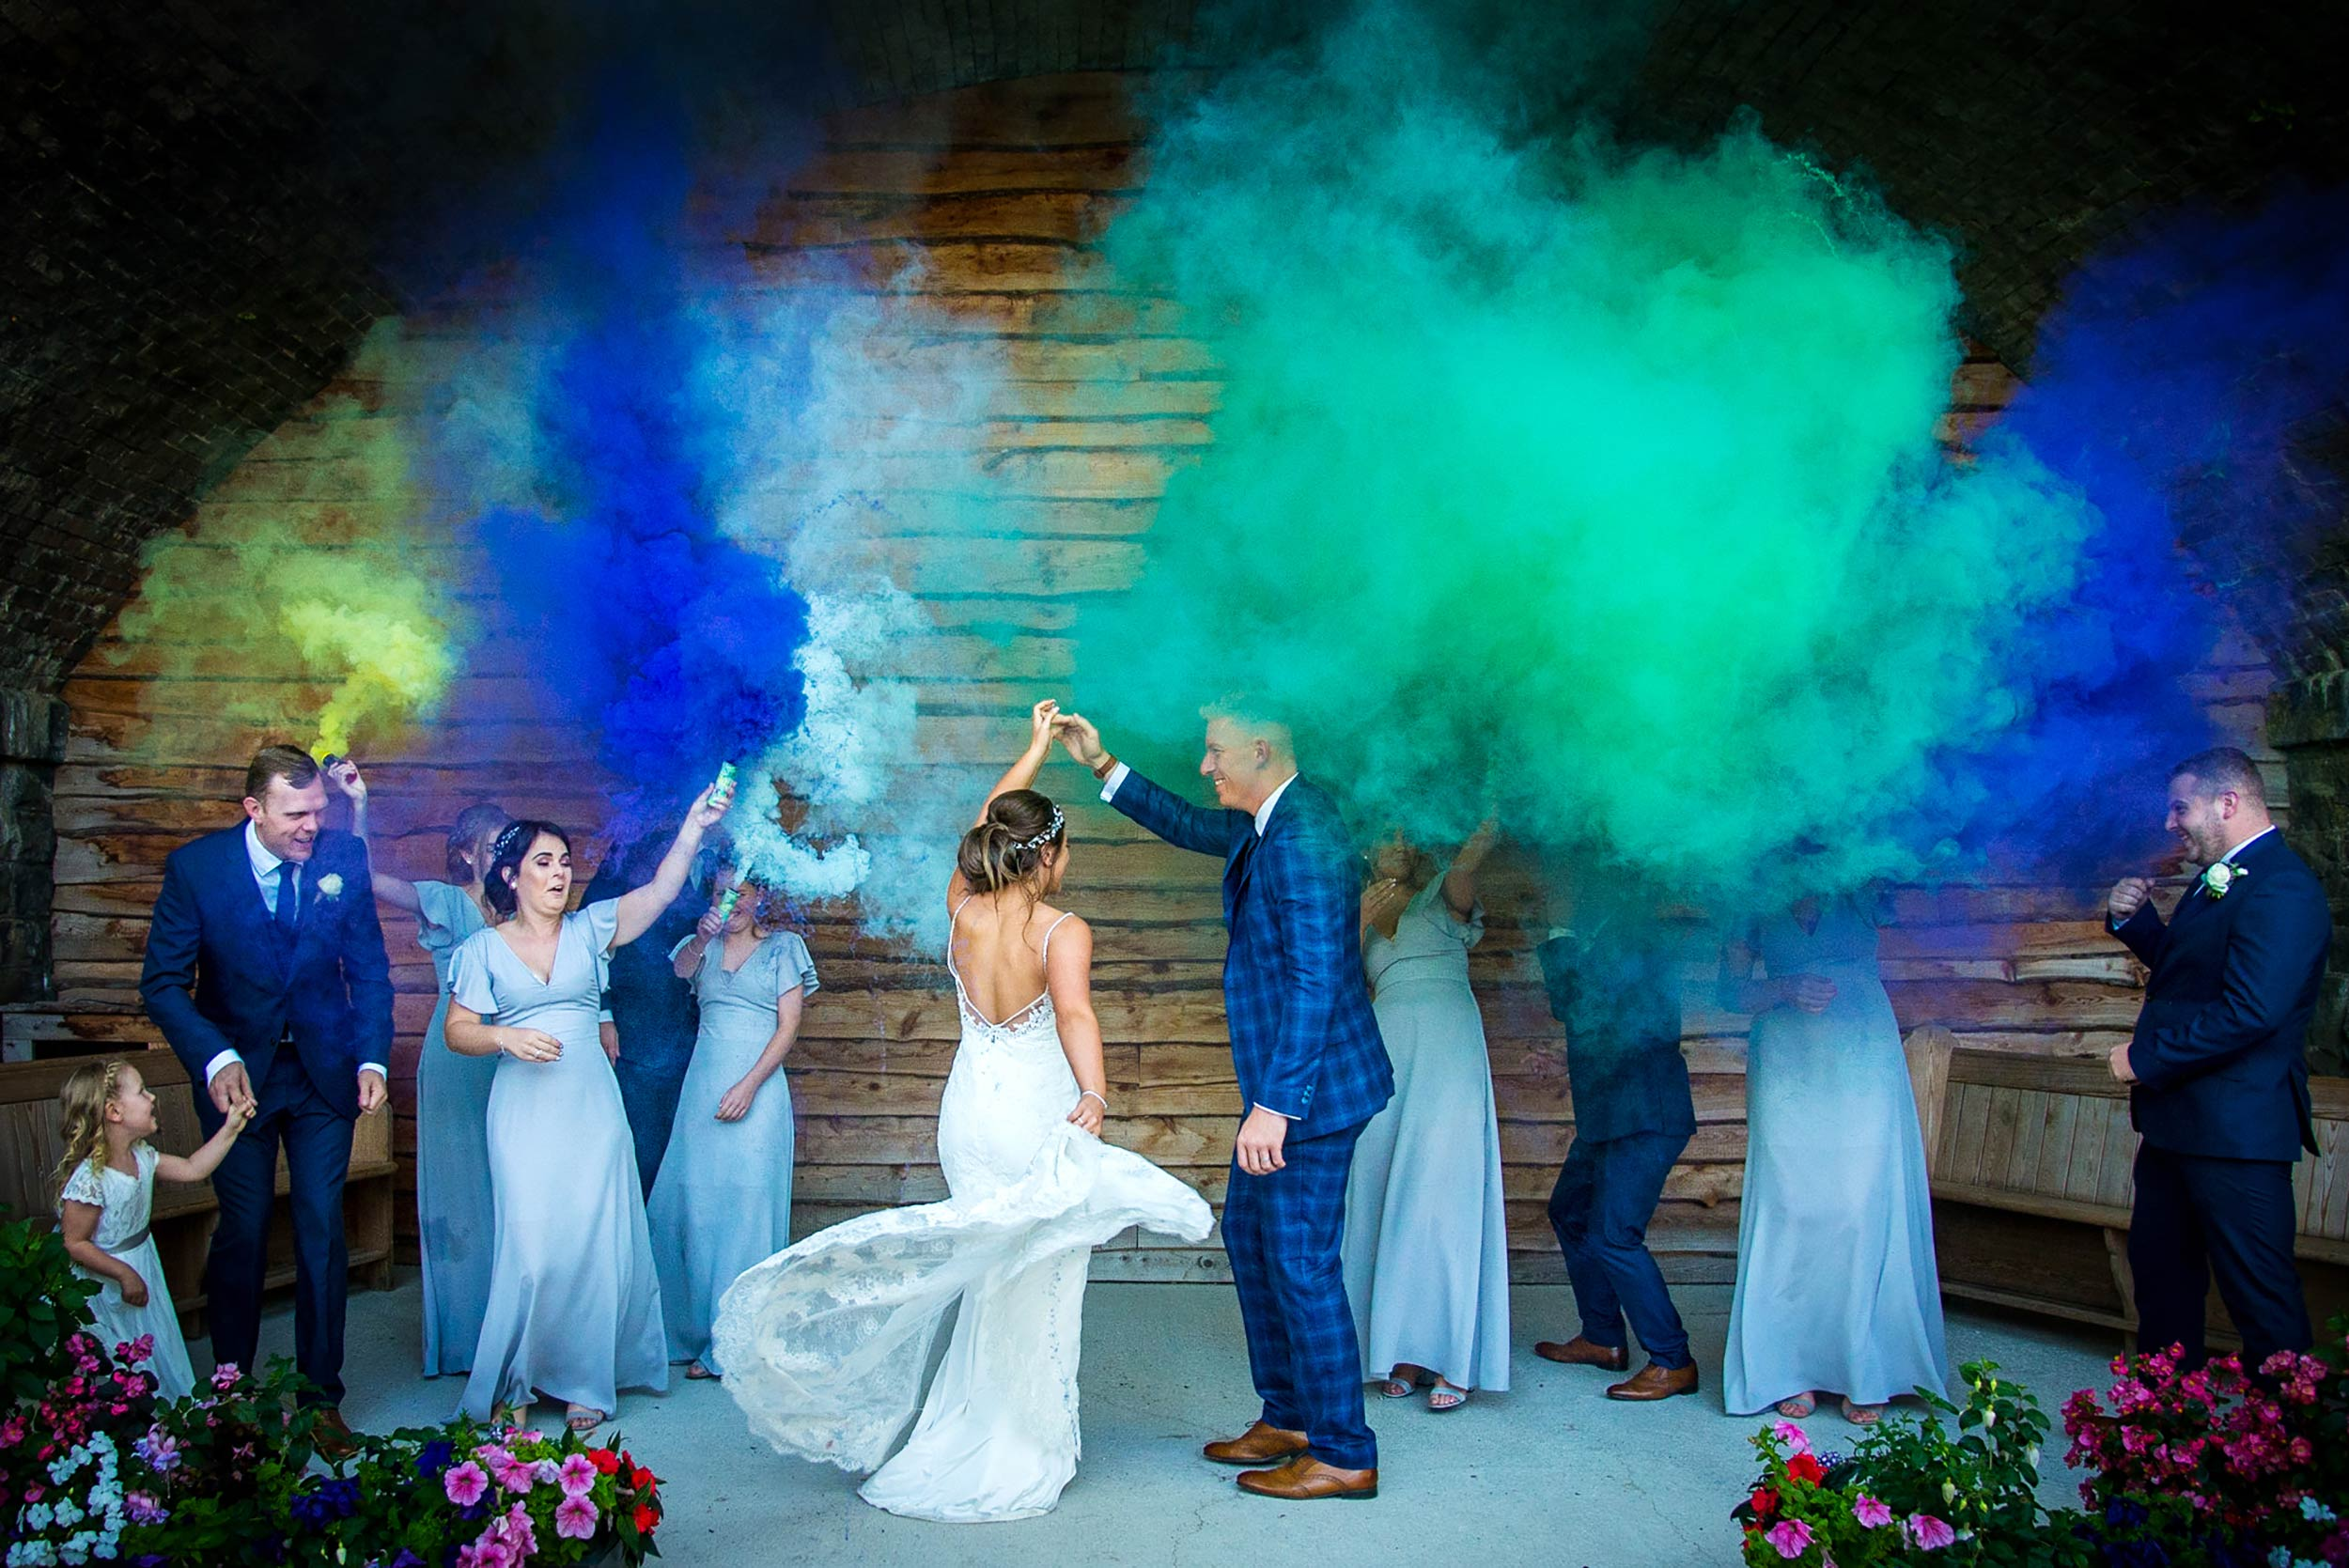 wedding photo by Stacey Oliver Photography of smoke bombs during couples wedding shoot at Tower Hill Barns